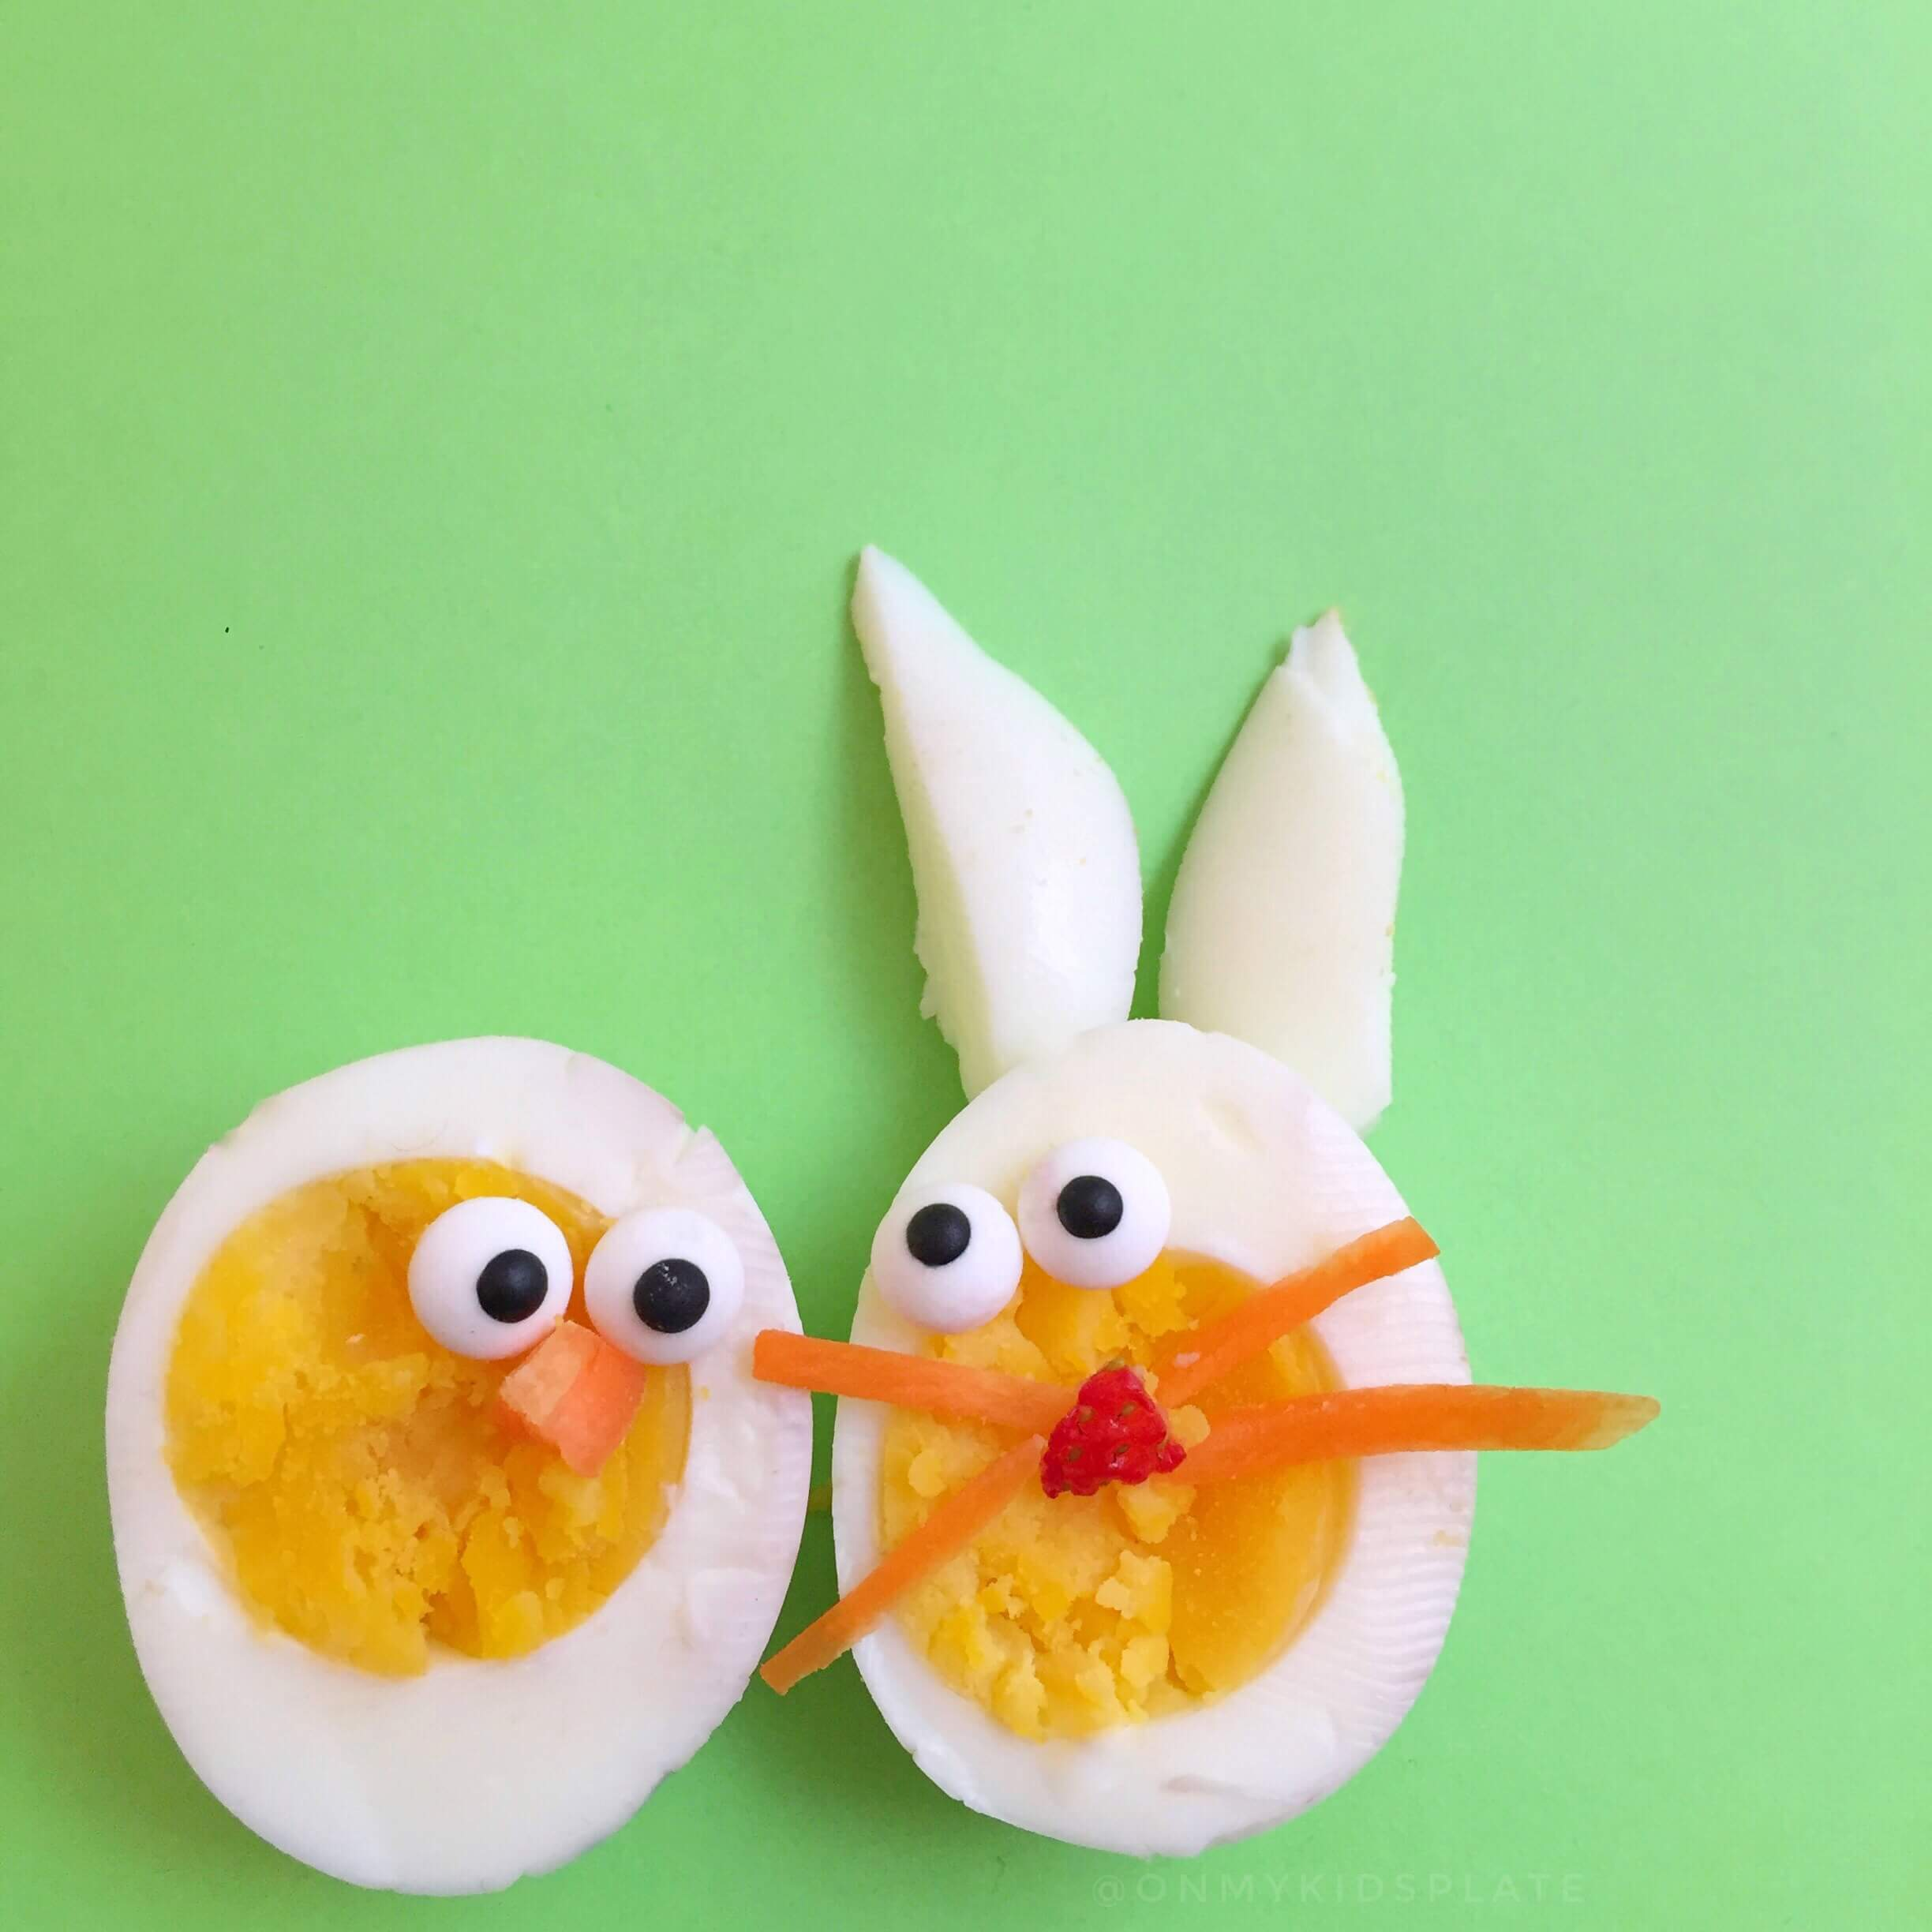 Hard-boiled eggs on a green background cut in half decorated like a rabbit and a chick.